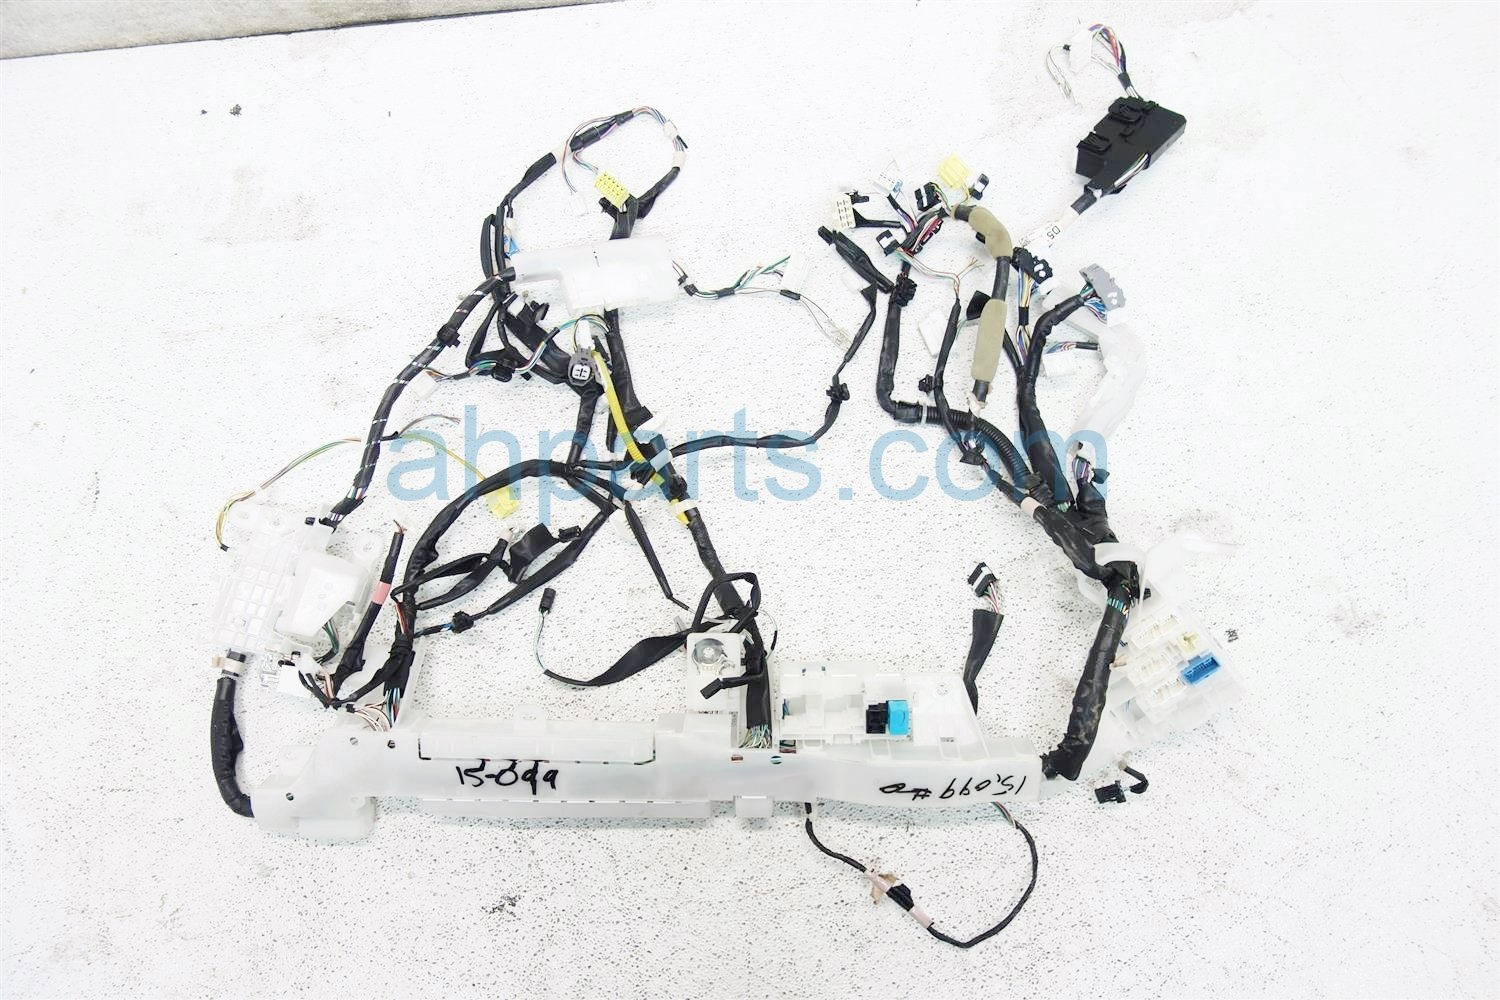 2015 Toyota Corolla INSTRUMENT HARNESS 82118 0ZL70 Replacement